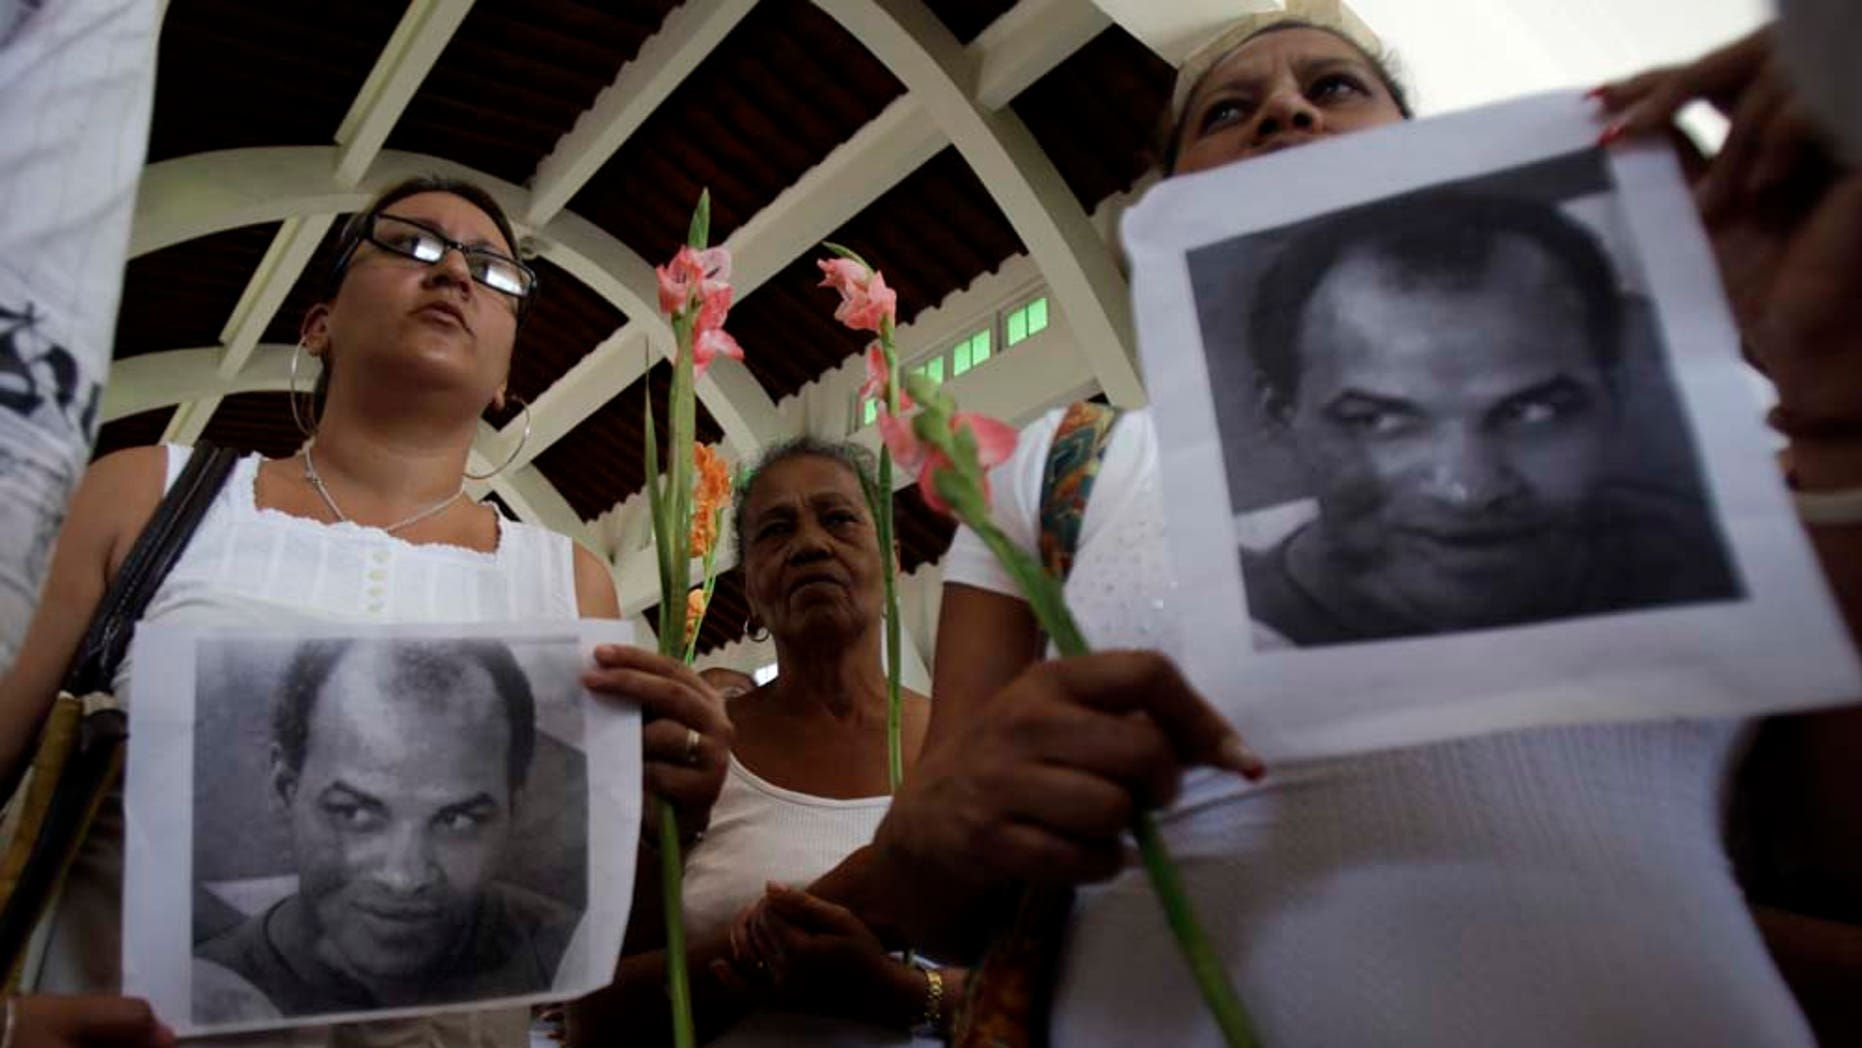 Members of Cuba's dissident group Ladies in White hold up photographs of the late political prisoner Orlando Zapata Tamayo during their weekly march in Havana, Cuba, Sunday, Feb. 6, 2011. Tamayo died on Feb. 23 following a lengthy hunger strike. Cuba freed Guido Sigler , a prominent political prisoner, on Friday and the Roman Catholic Church said Angel Moya, another political prisoner, would be released soon and allowed to stay in the country. (AP Photo/Javier Galeano)